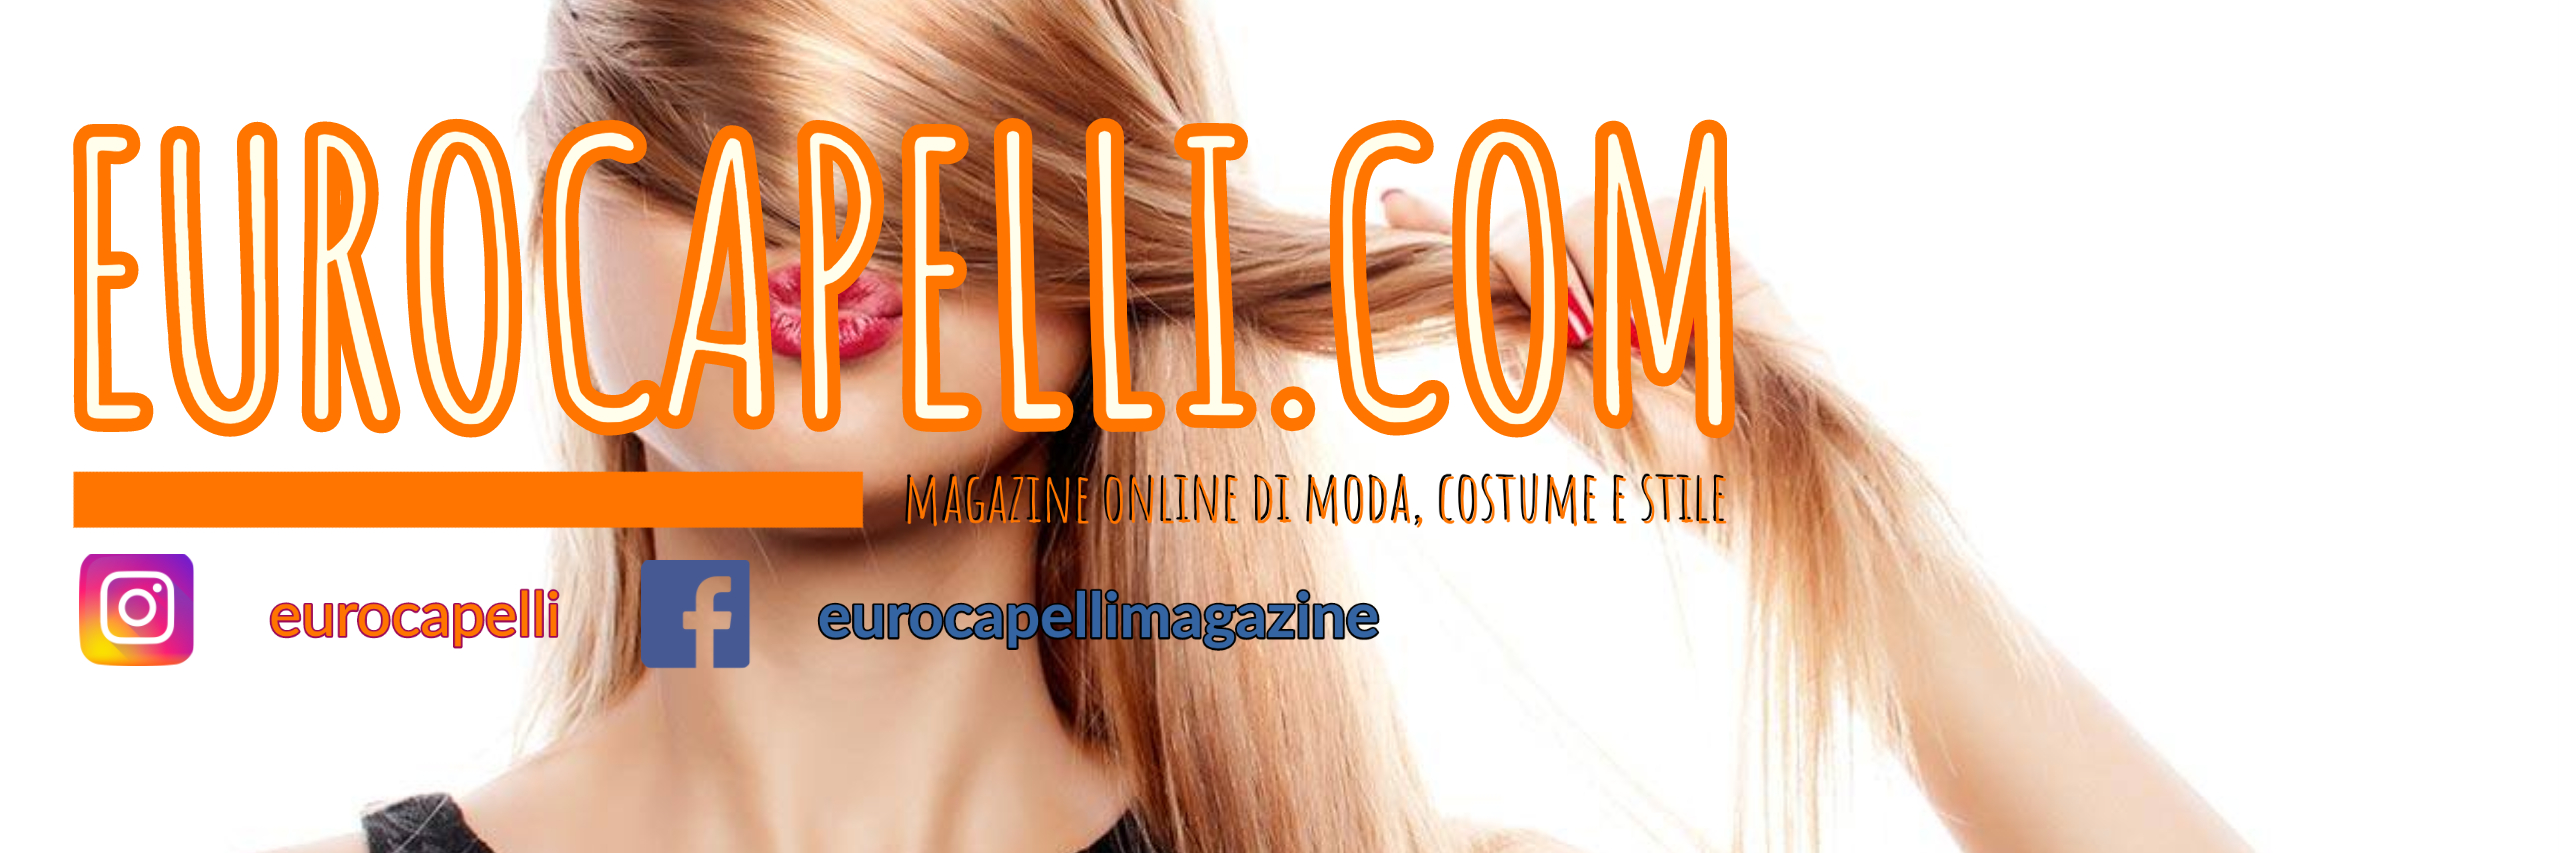 eurocapelli blog magazine moda bellezza salute sport capelli